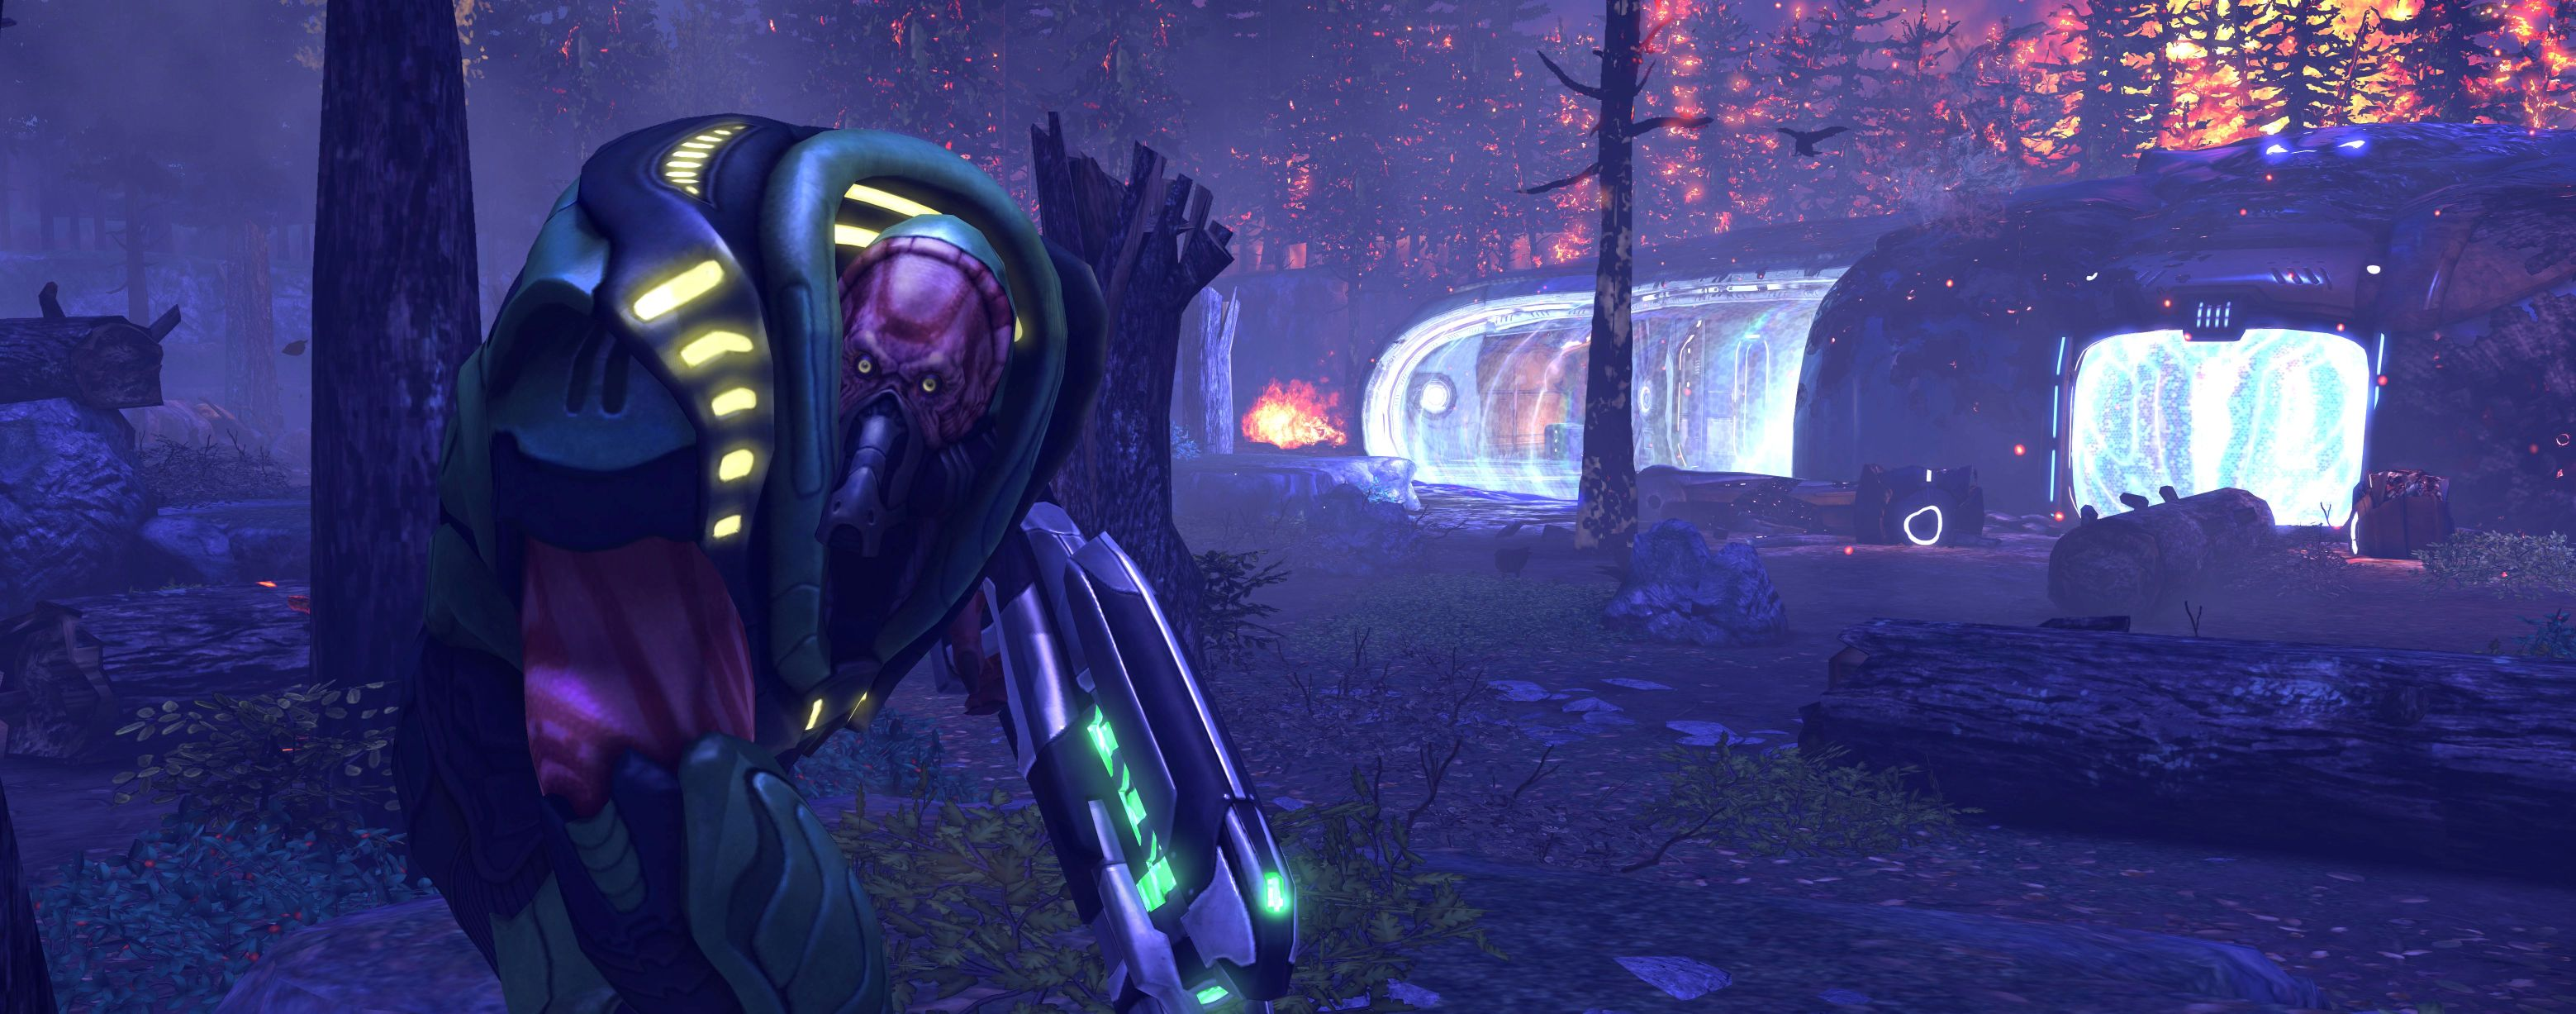 xcom: enemy unknown pc features revealed: prettier and more tactical